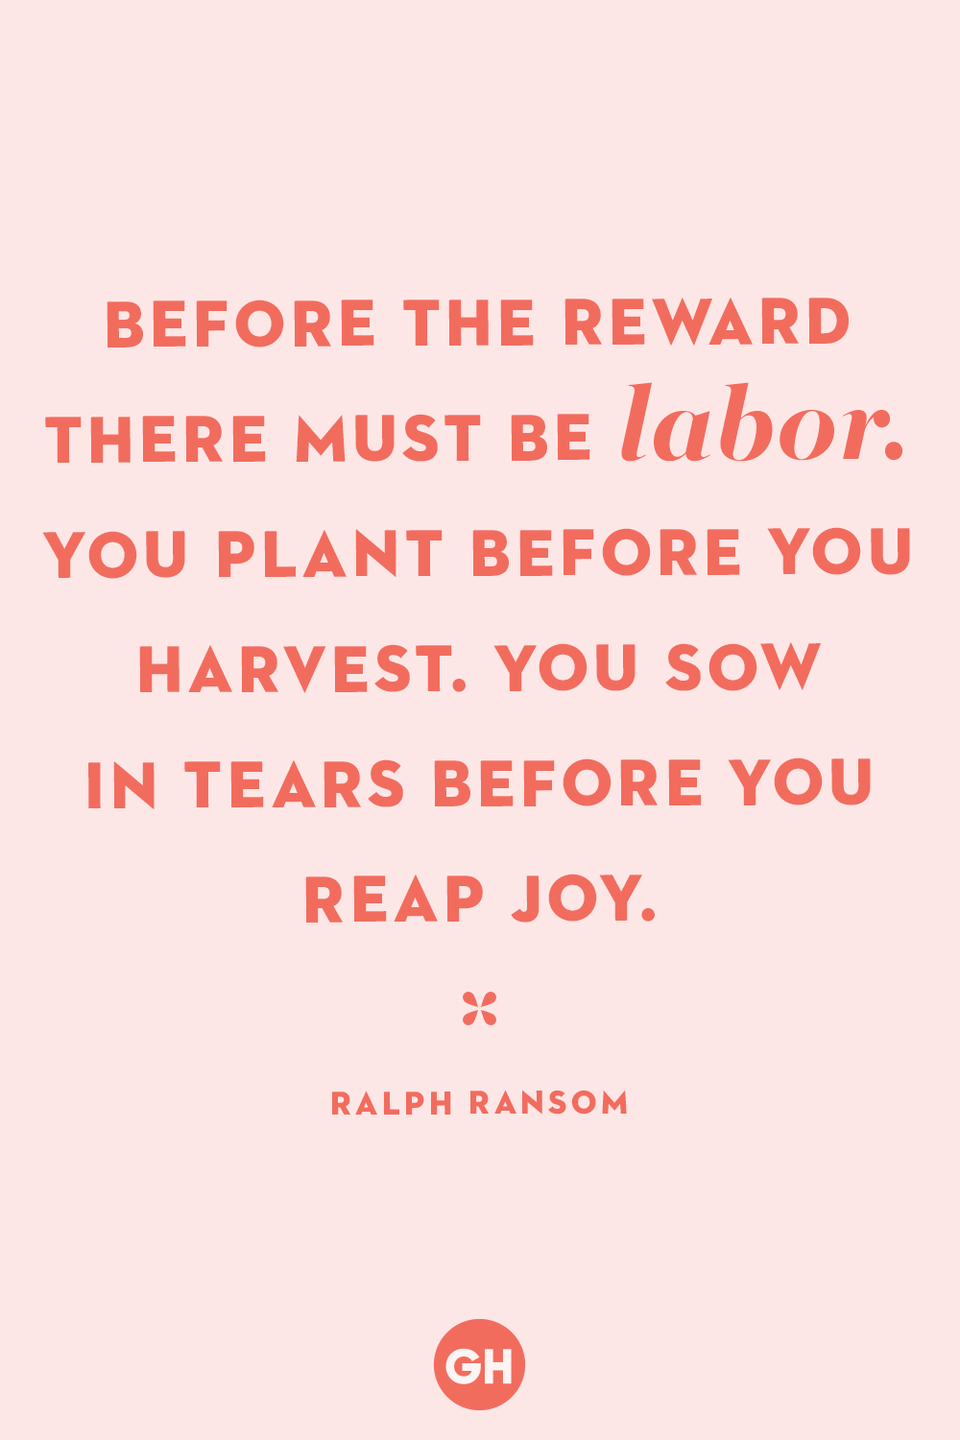 <p>Before the reward there must be labor. You plant before you harvest. You sow in tears before you reap joy.</p>